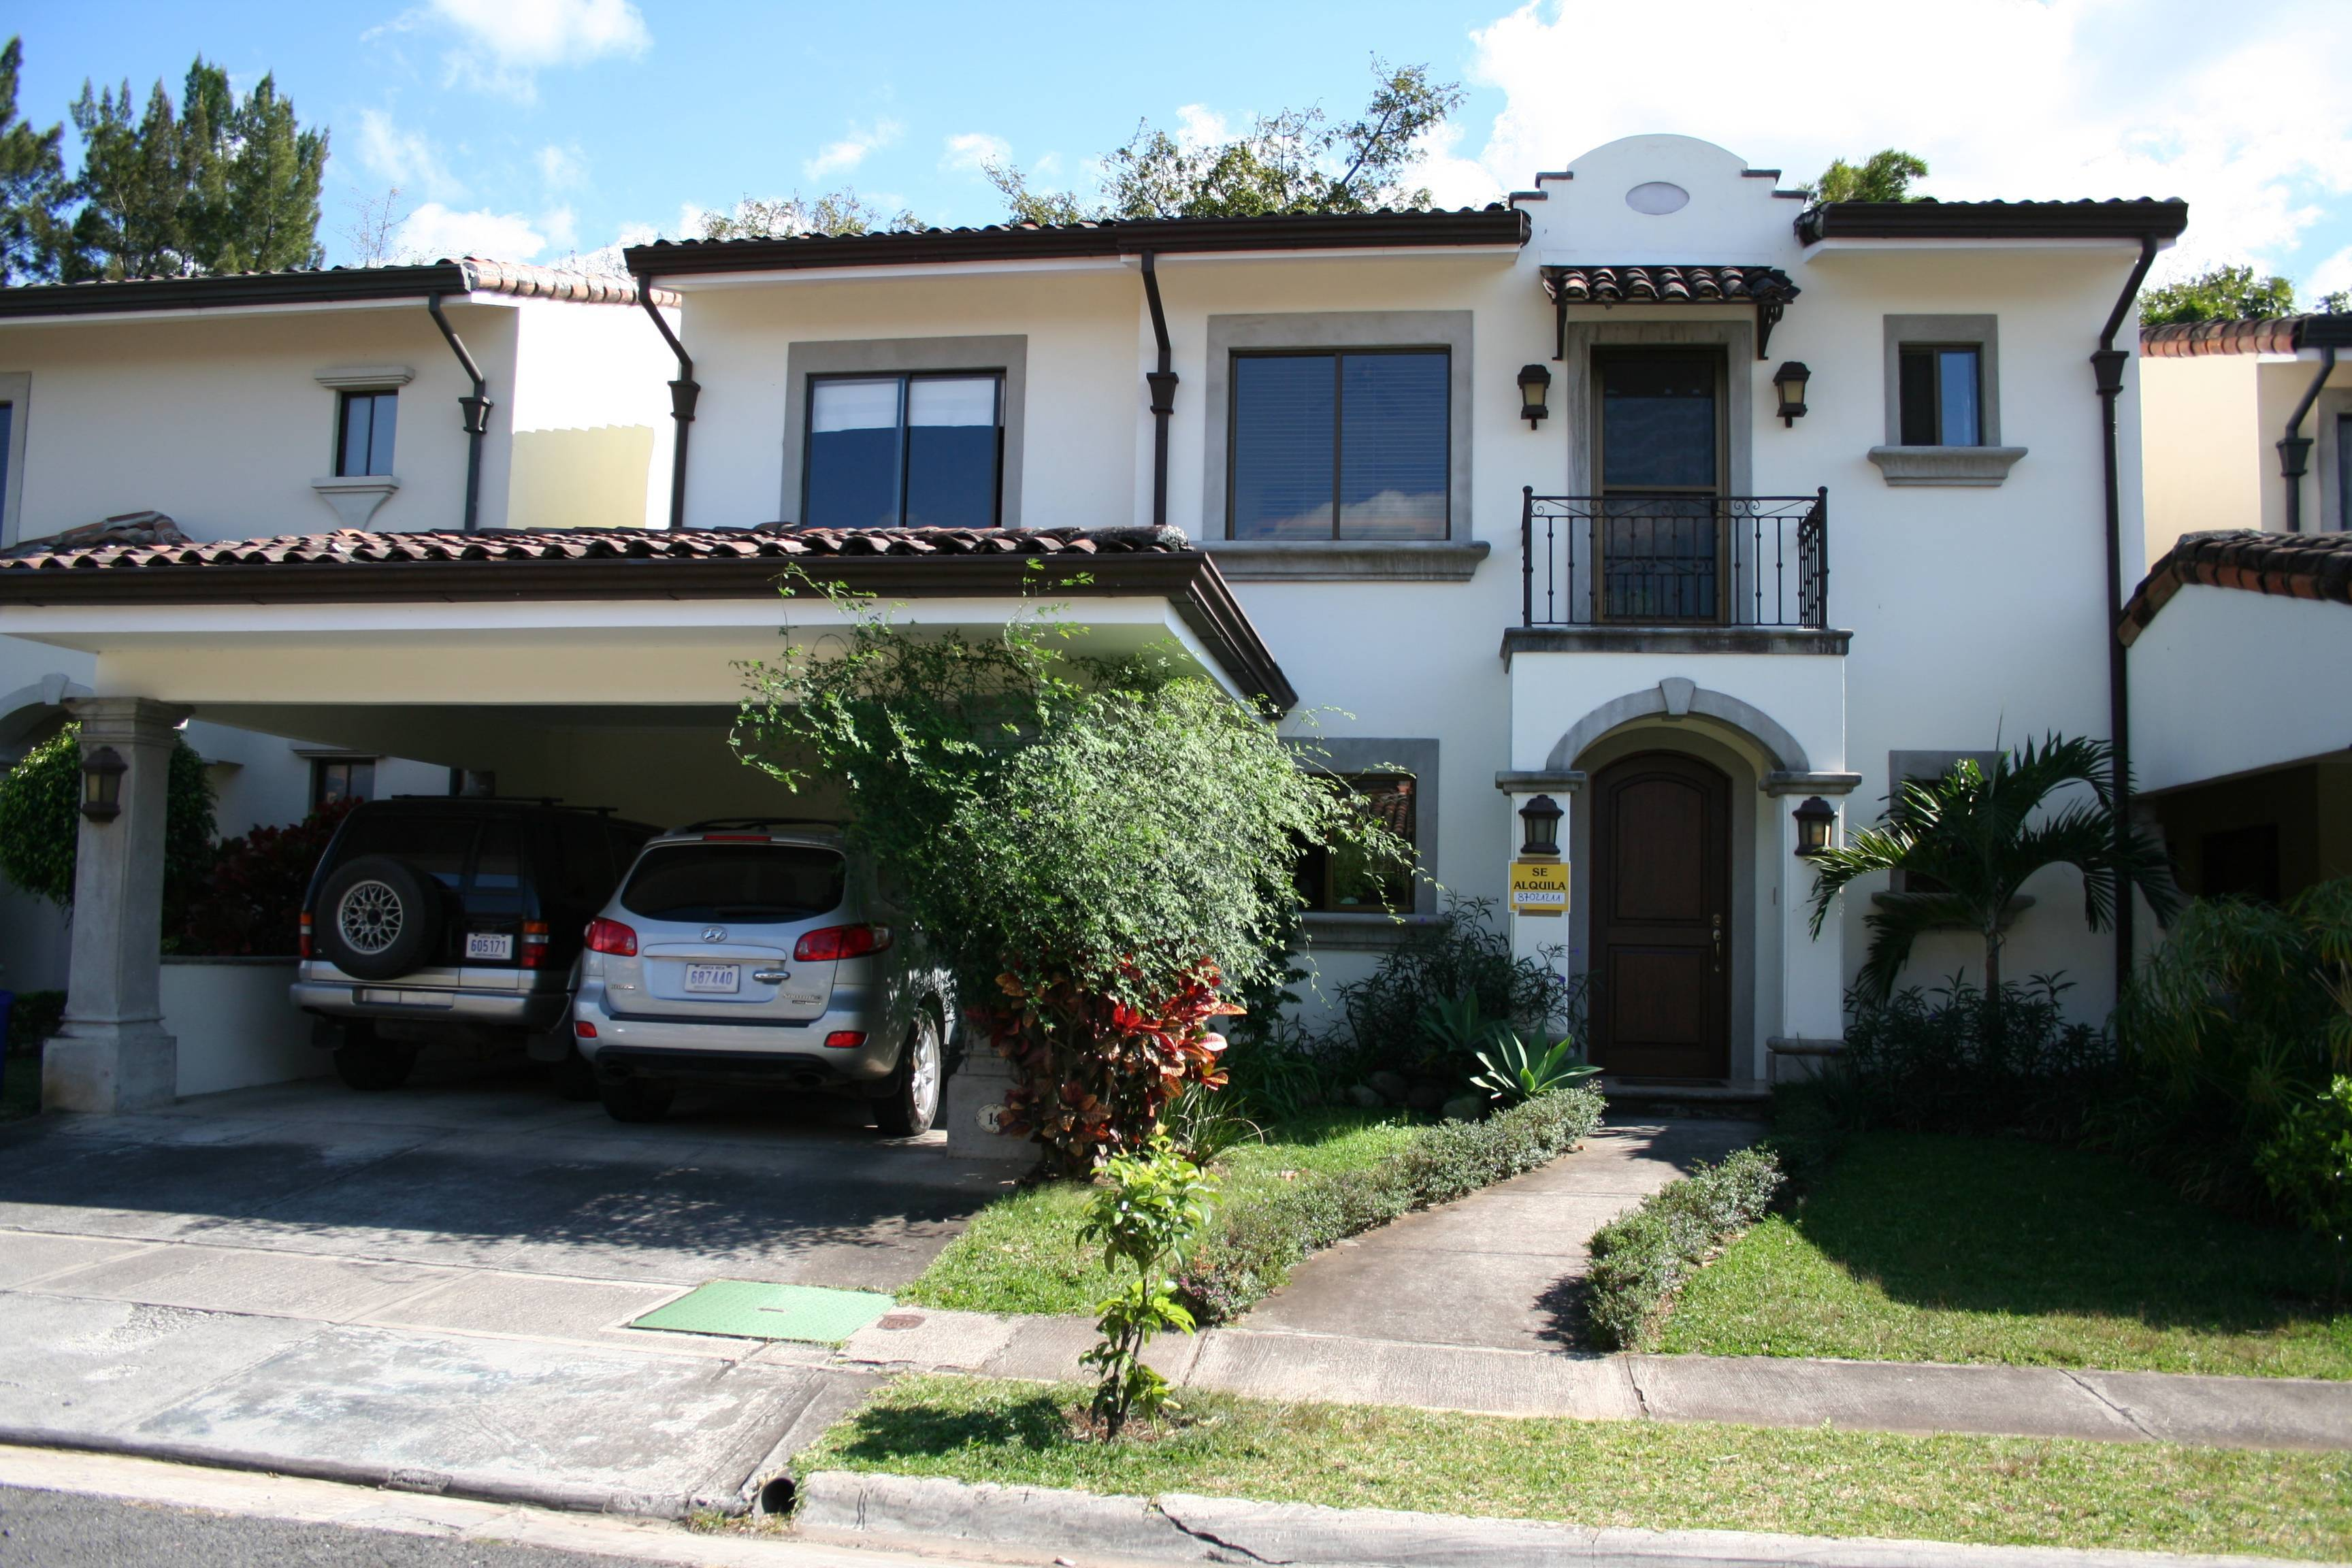 House for rent santa ana san jose costa rica 2 story 3 for Costa rica house rental